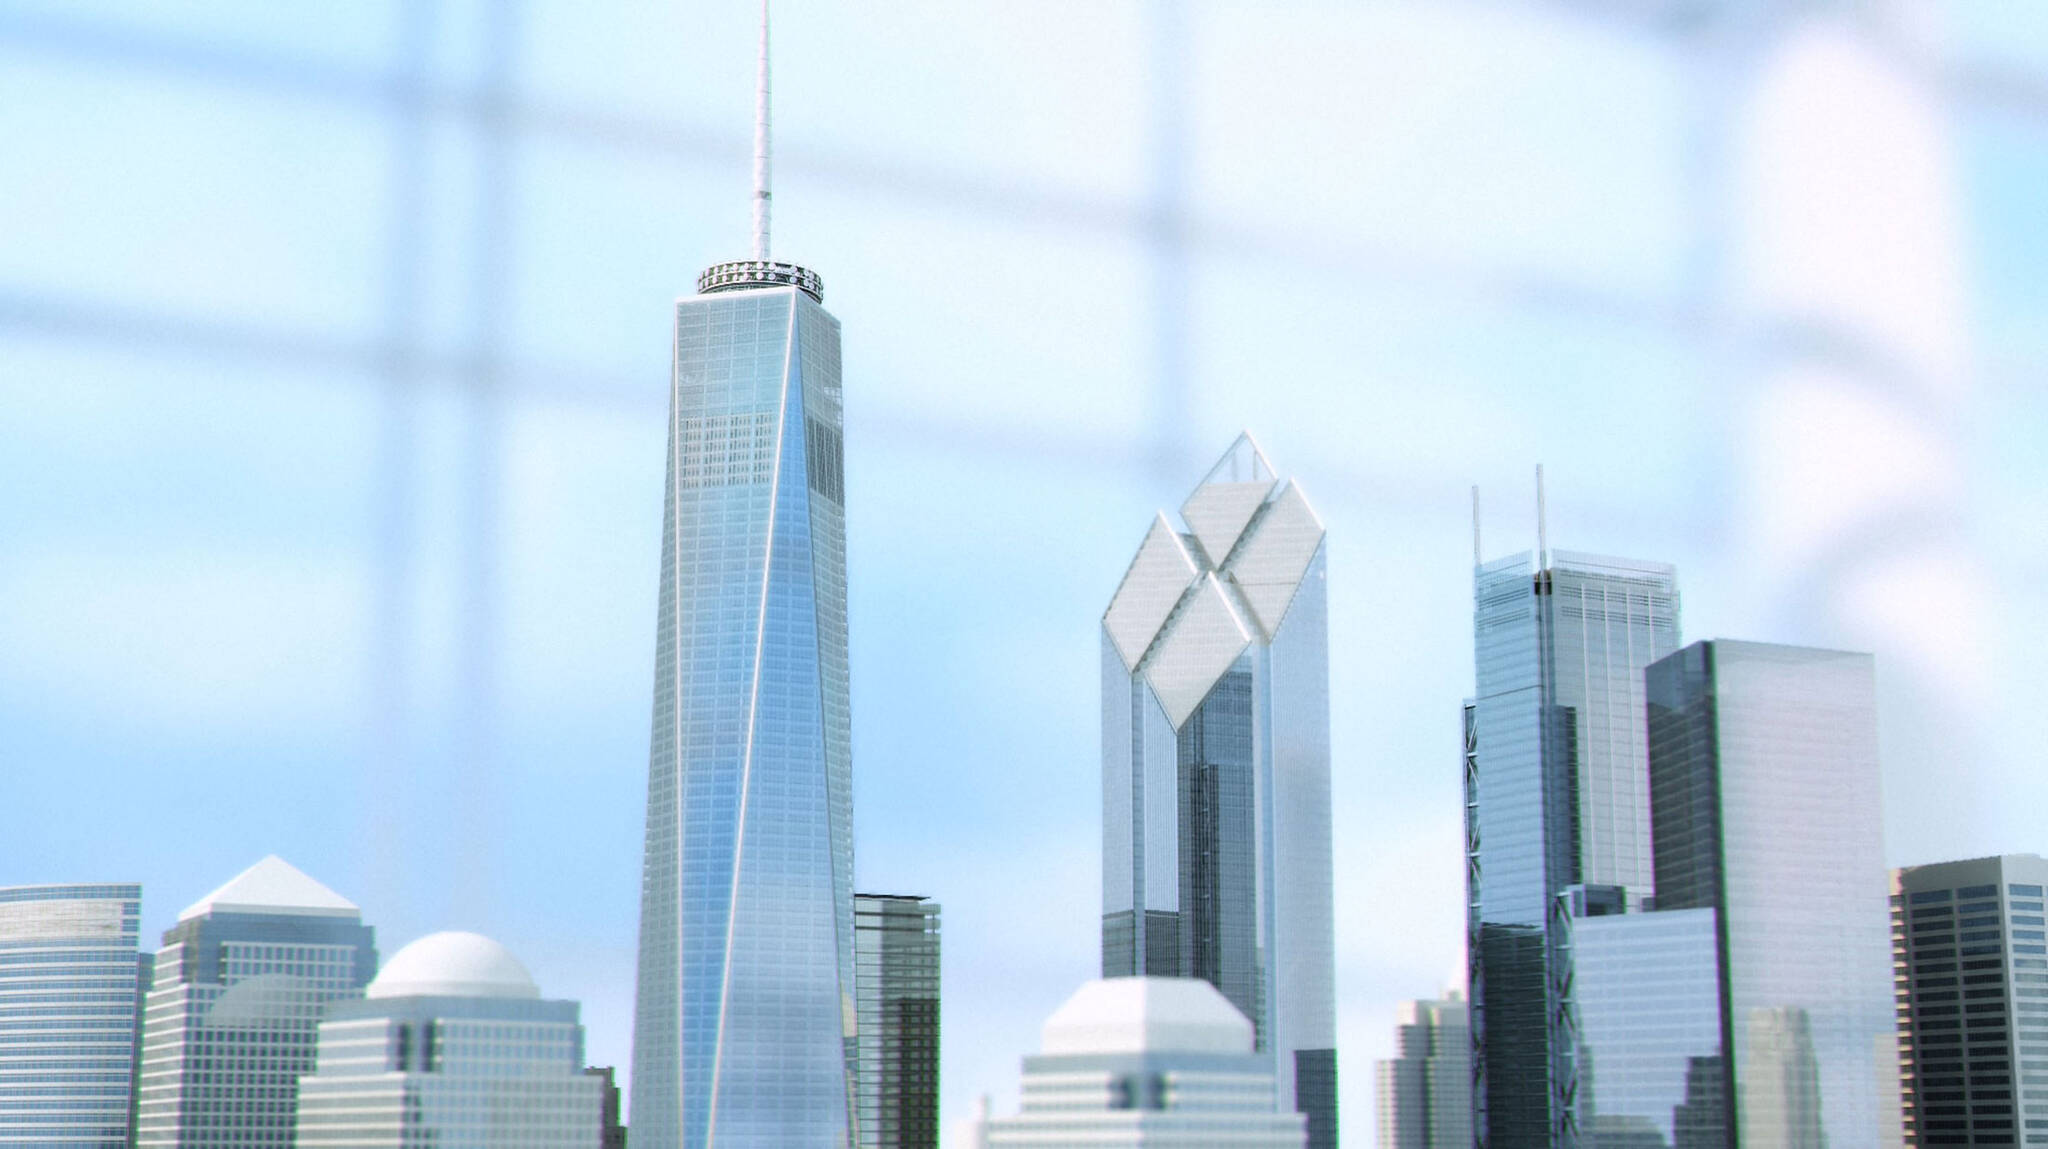 Rising: Rebuilding Ground Zero documentary Co-produced by Danny Forster and Steven Spielberg about the rebuilding of the World Trade Center site in the wake of 9/11. The Emmy-award-winning documentary is narrated by Ed Harris.